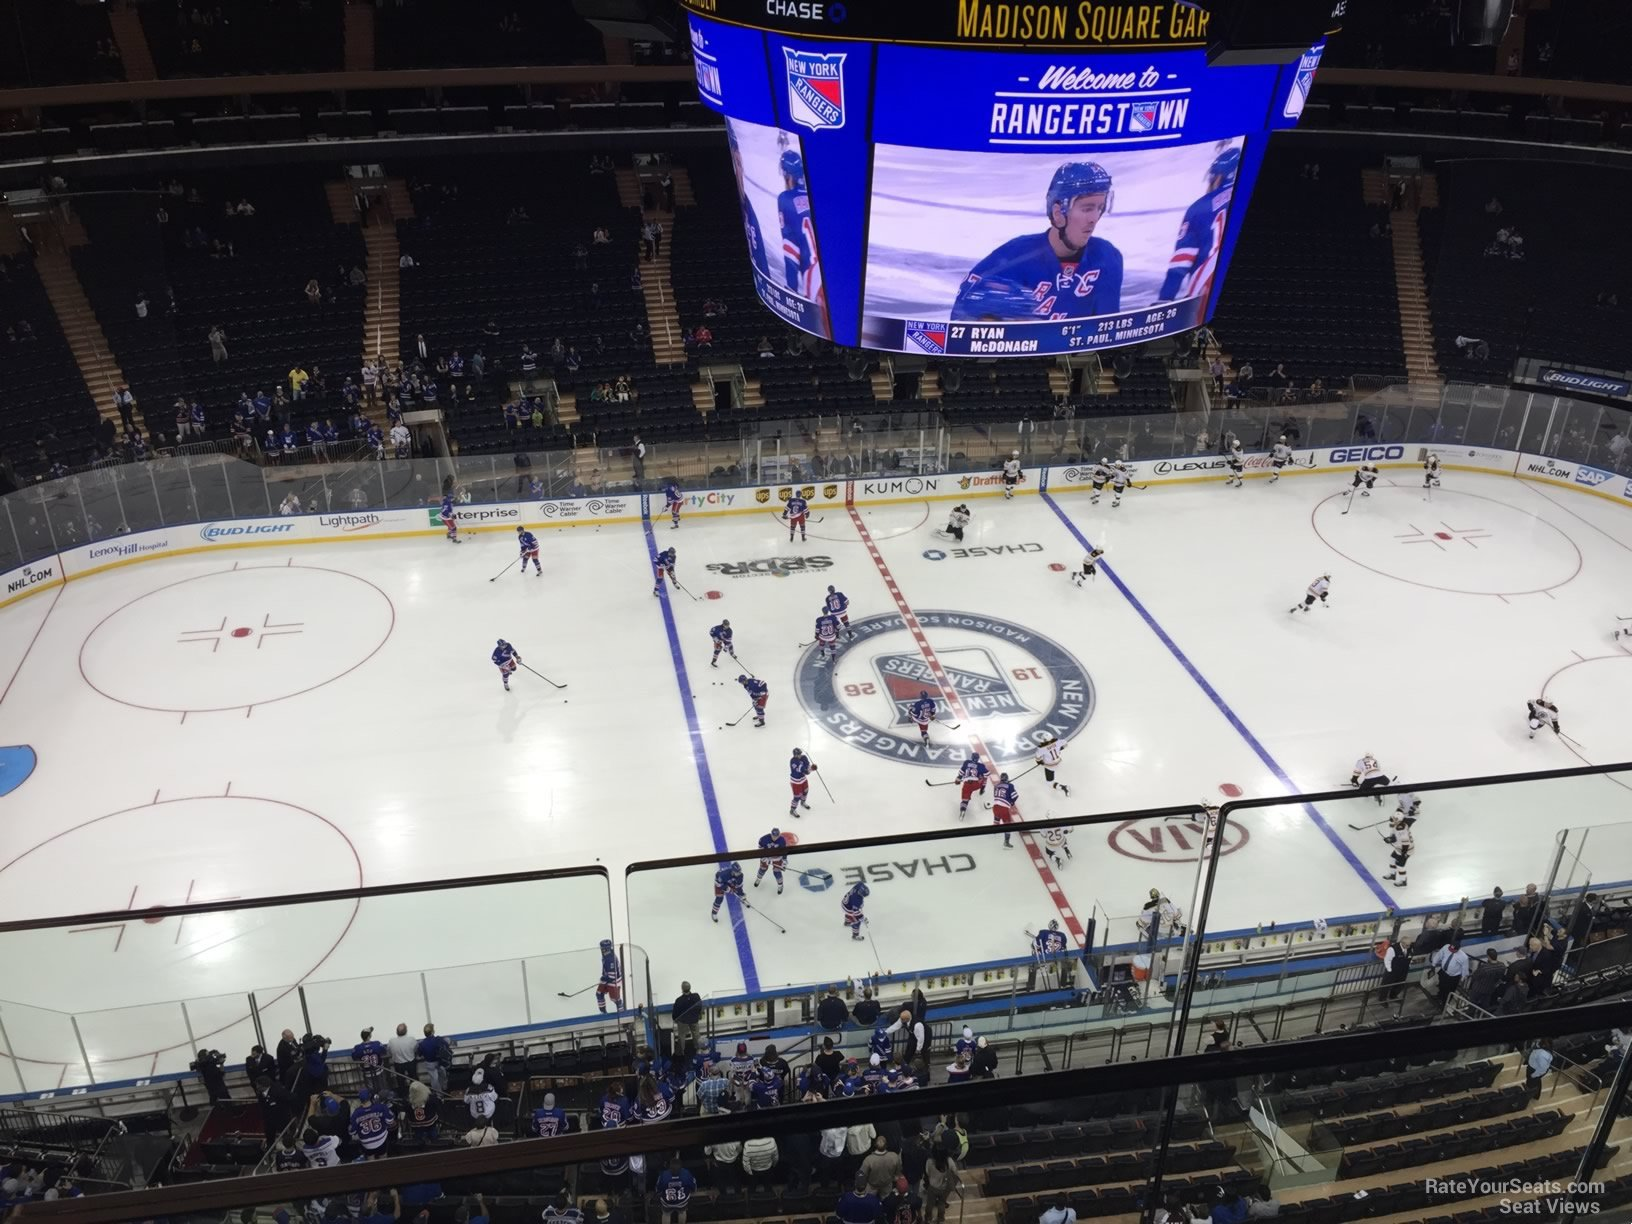 Seat View Madison Square Garden Hockey Garden Ftempo